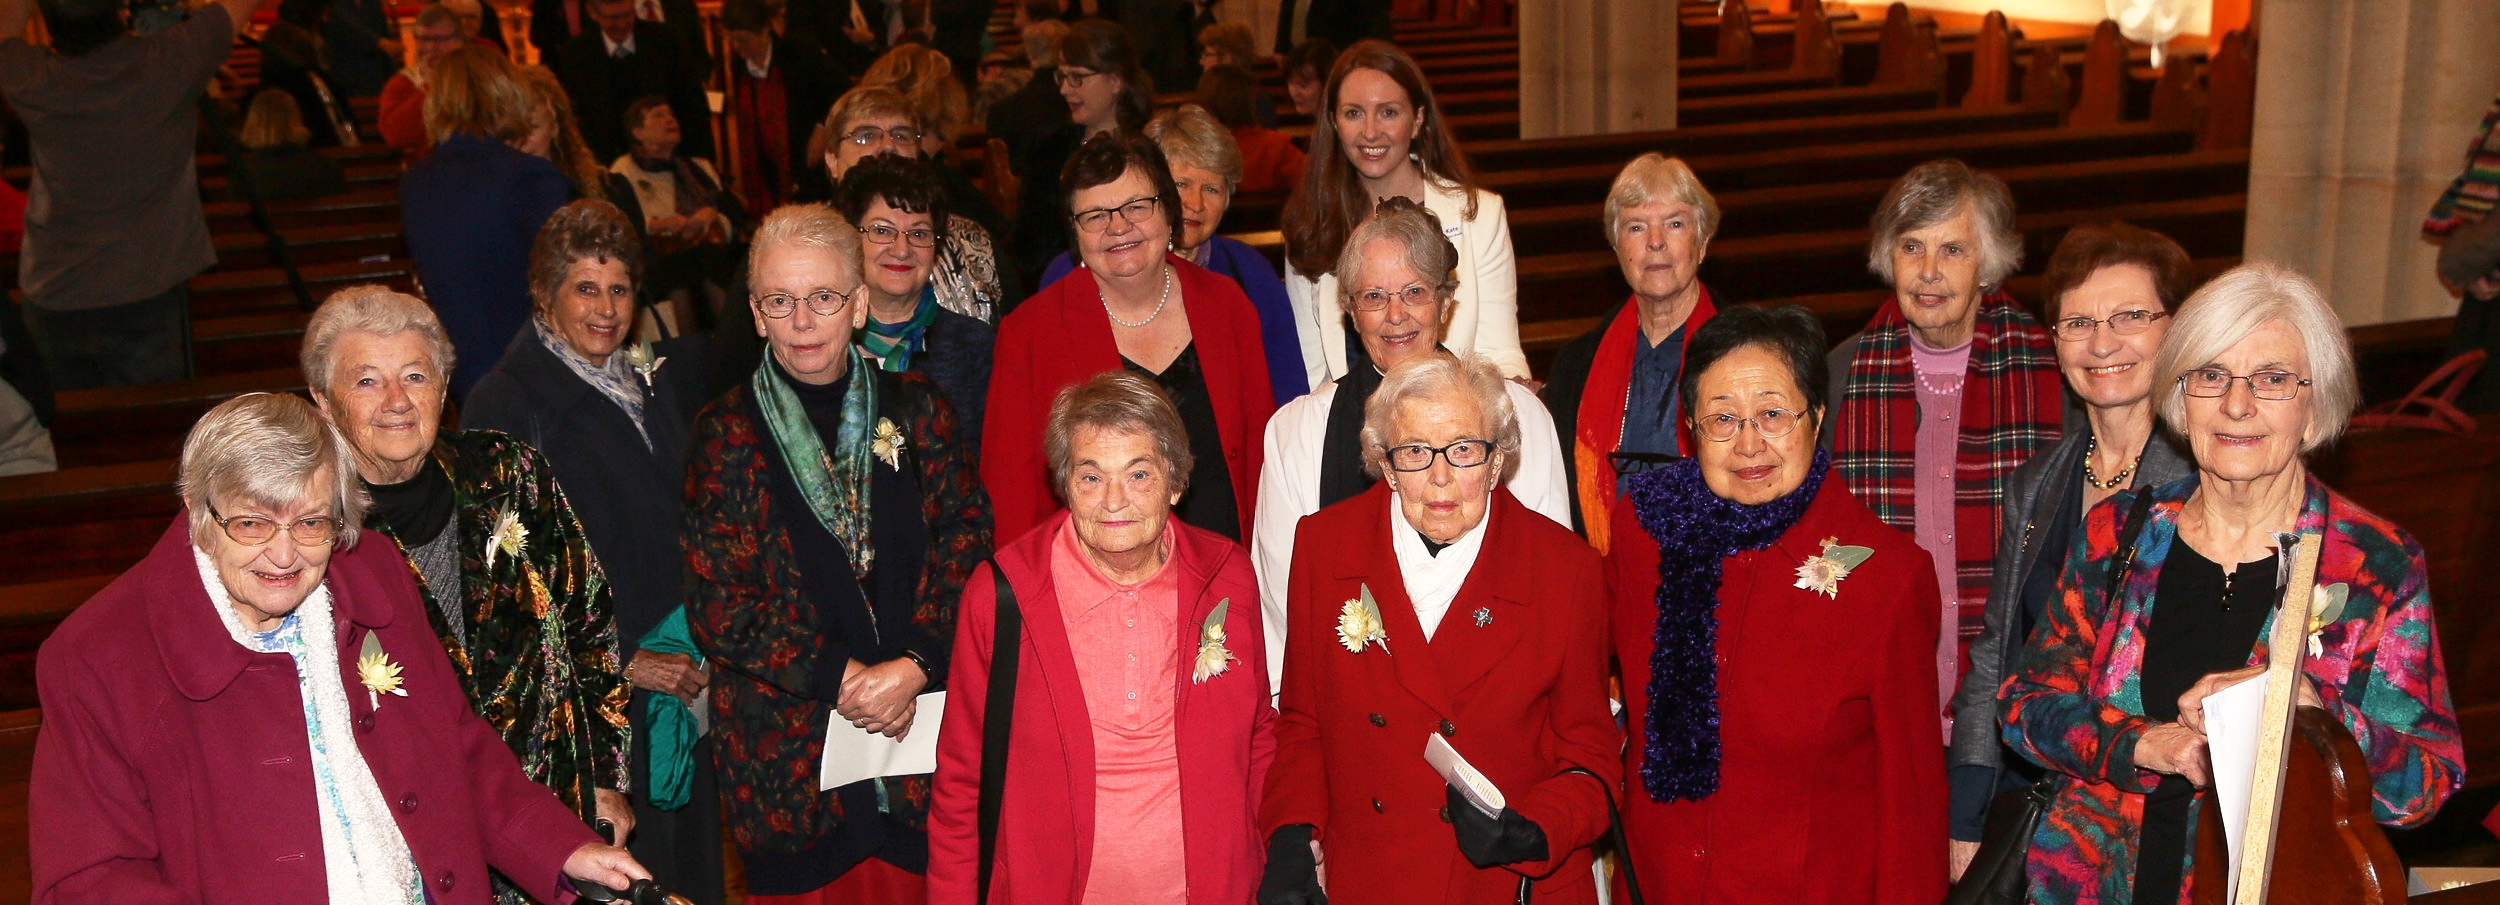 CEO Kate Harrison Brennan and some of our deaconesses at the 125th celebration of ADM in 2016.